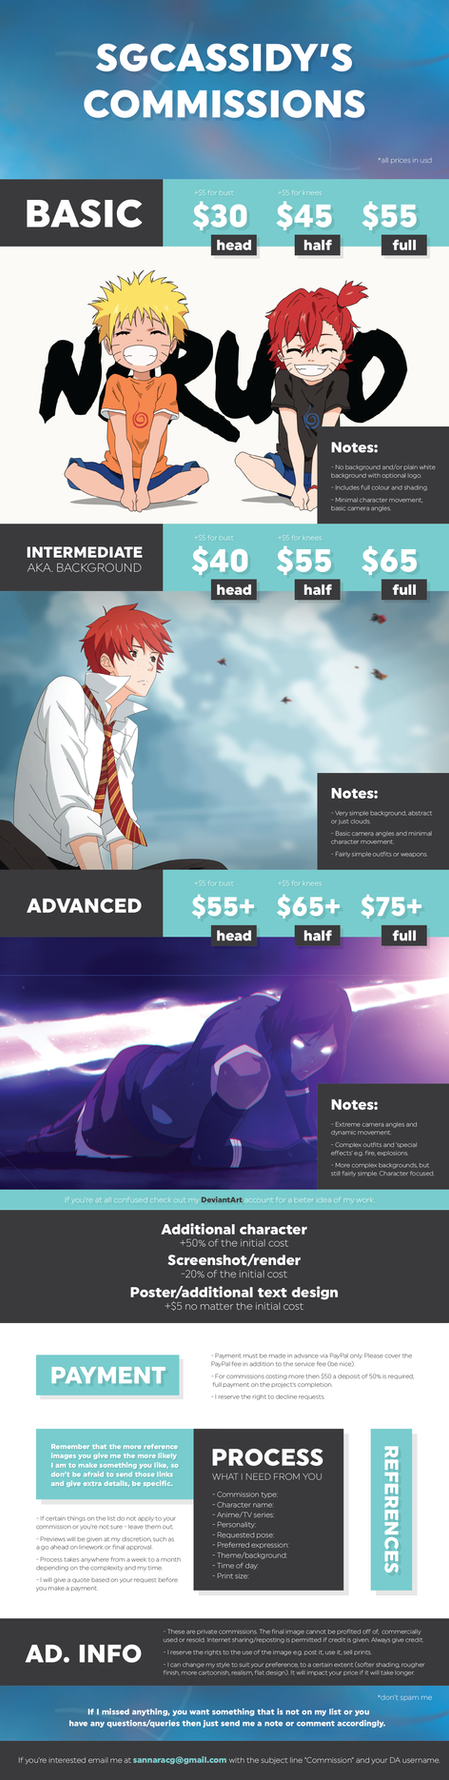 Commission Price Sheet .:Open:. by sgcassidy